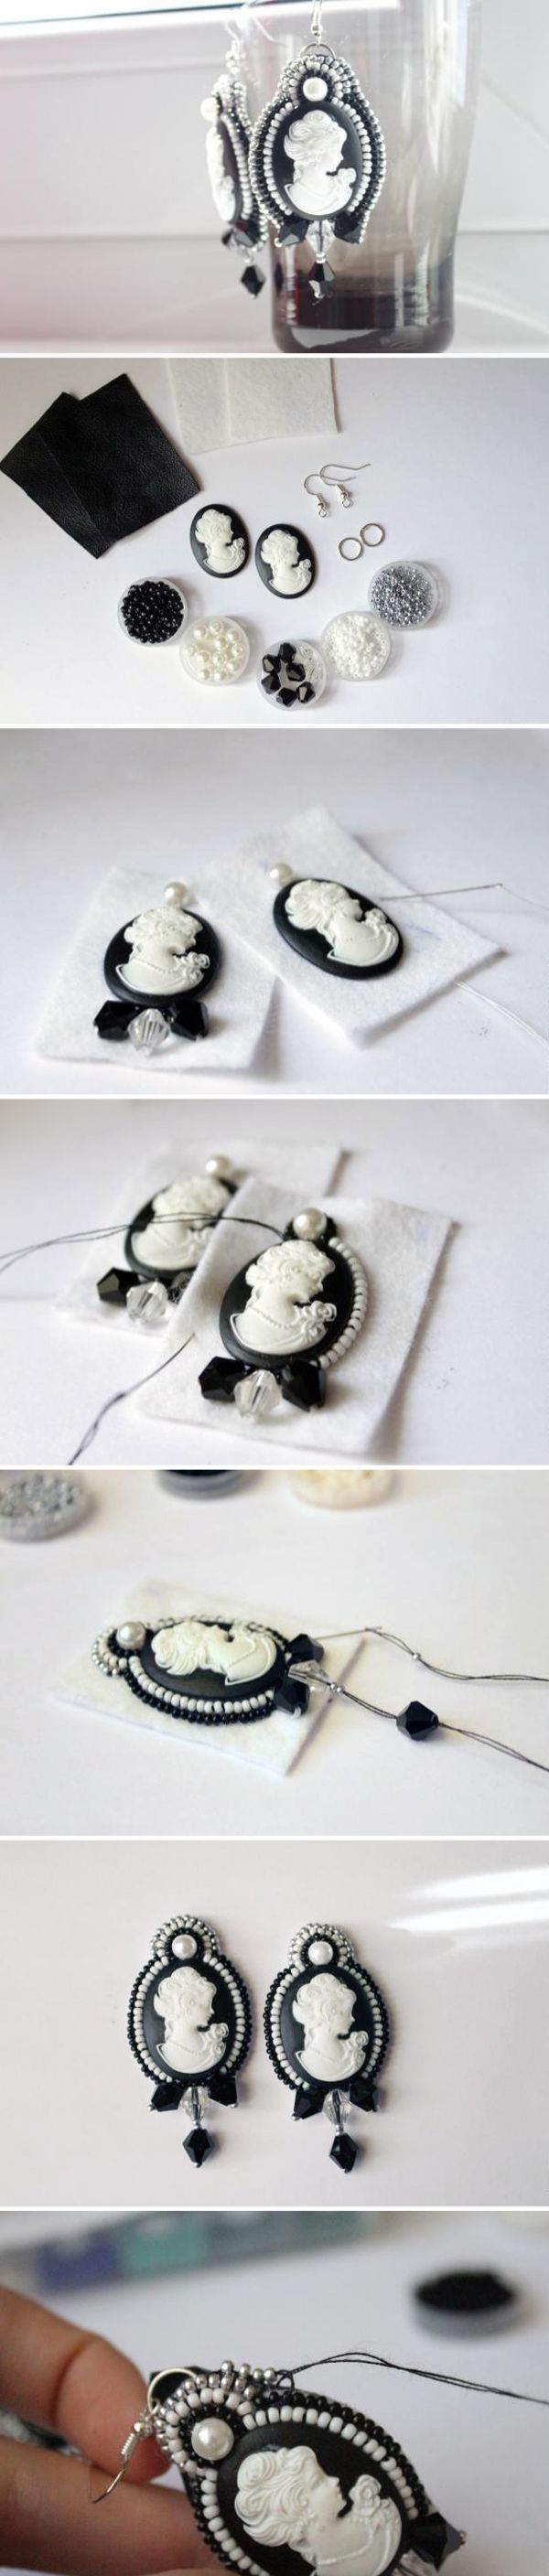 beaded earrings tutorial....they are so beautiful <3, I wonder if I can do it so perfectly?